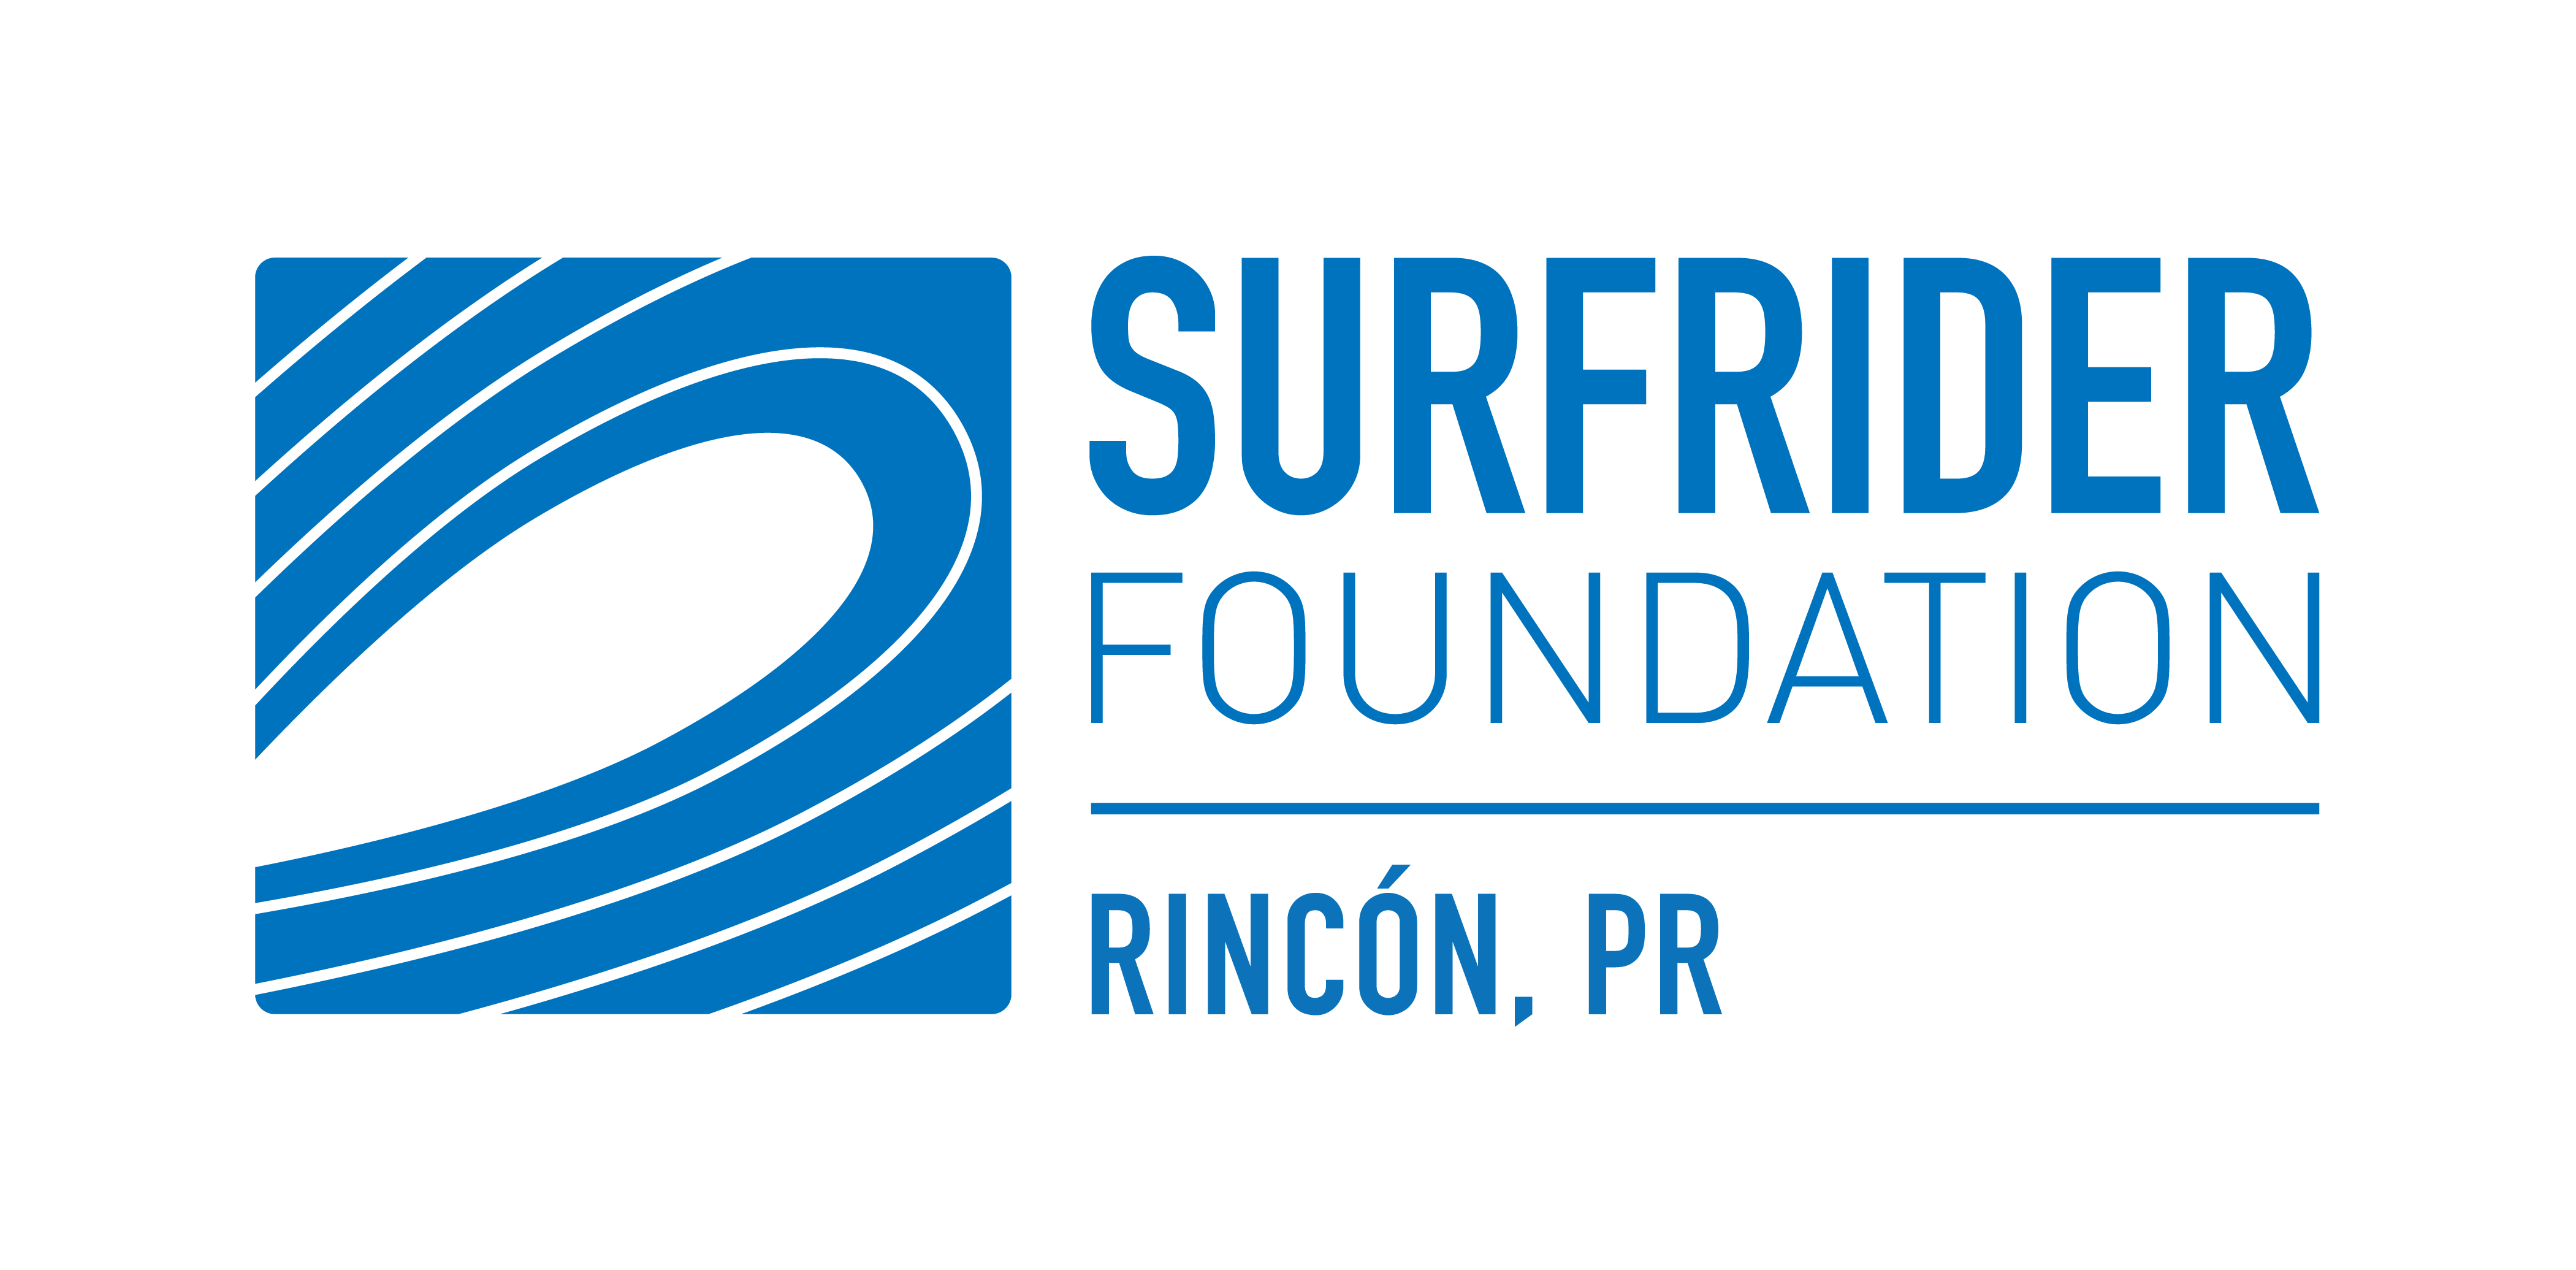 Rincon Puerto Rico Chapter of the Surfrider Foundation